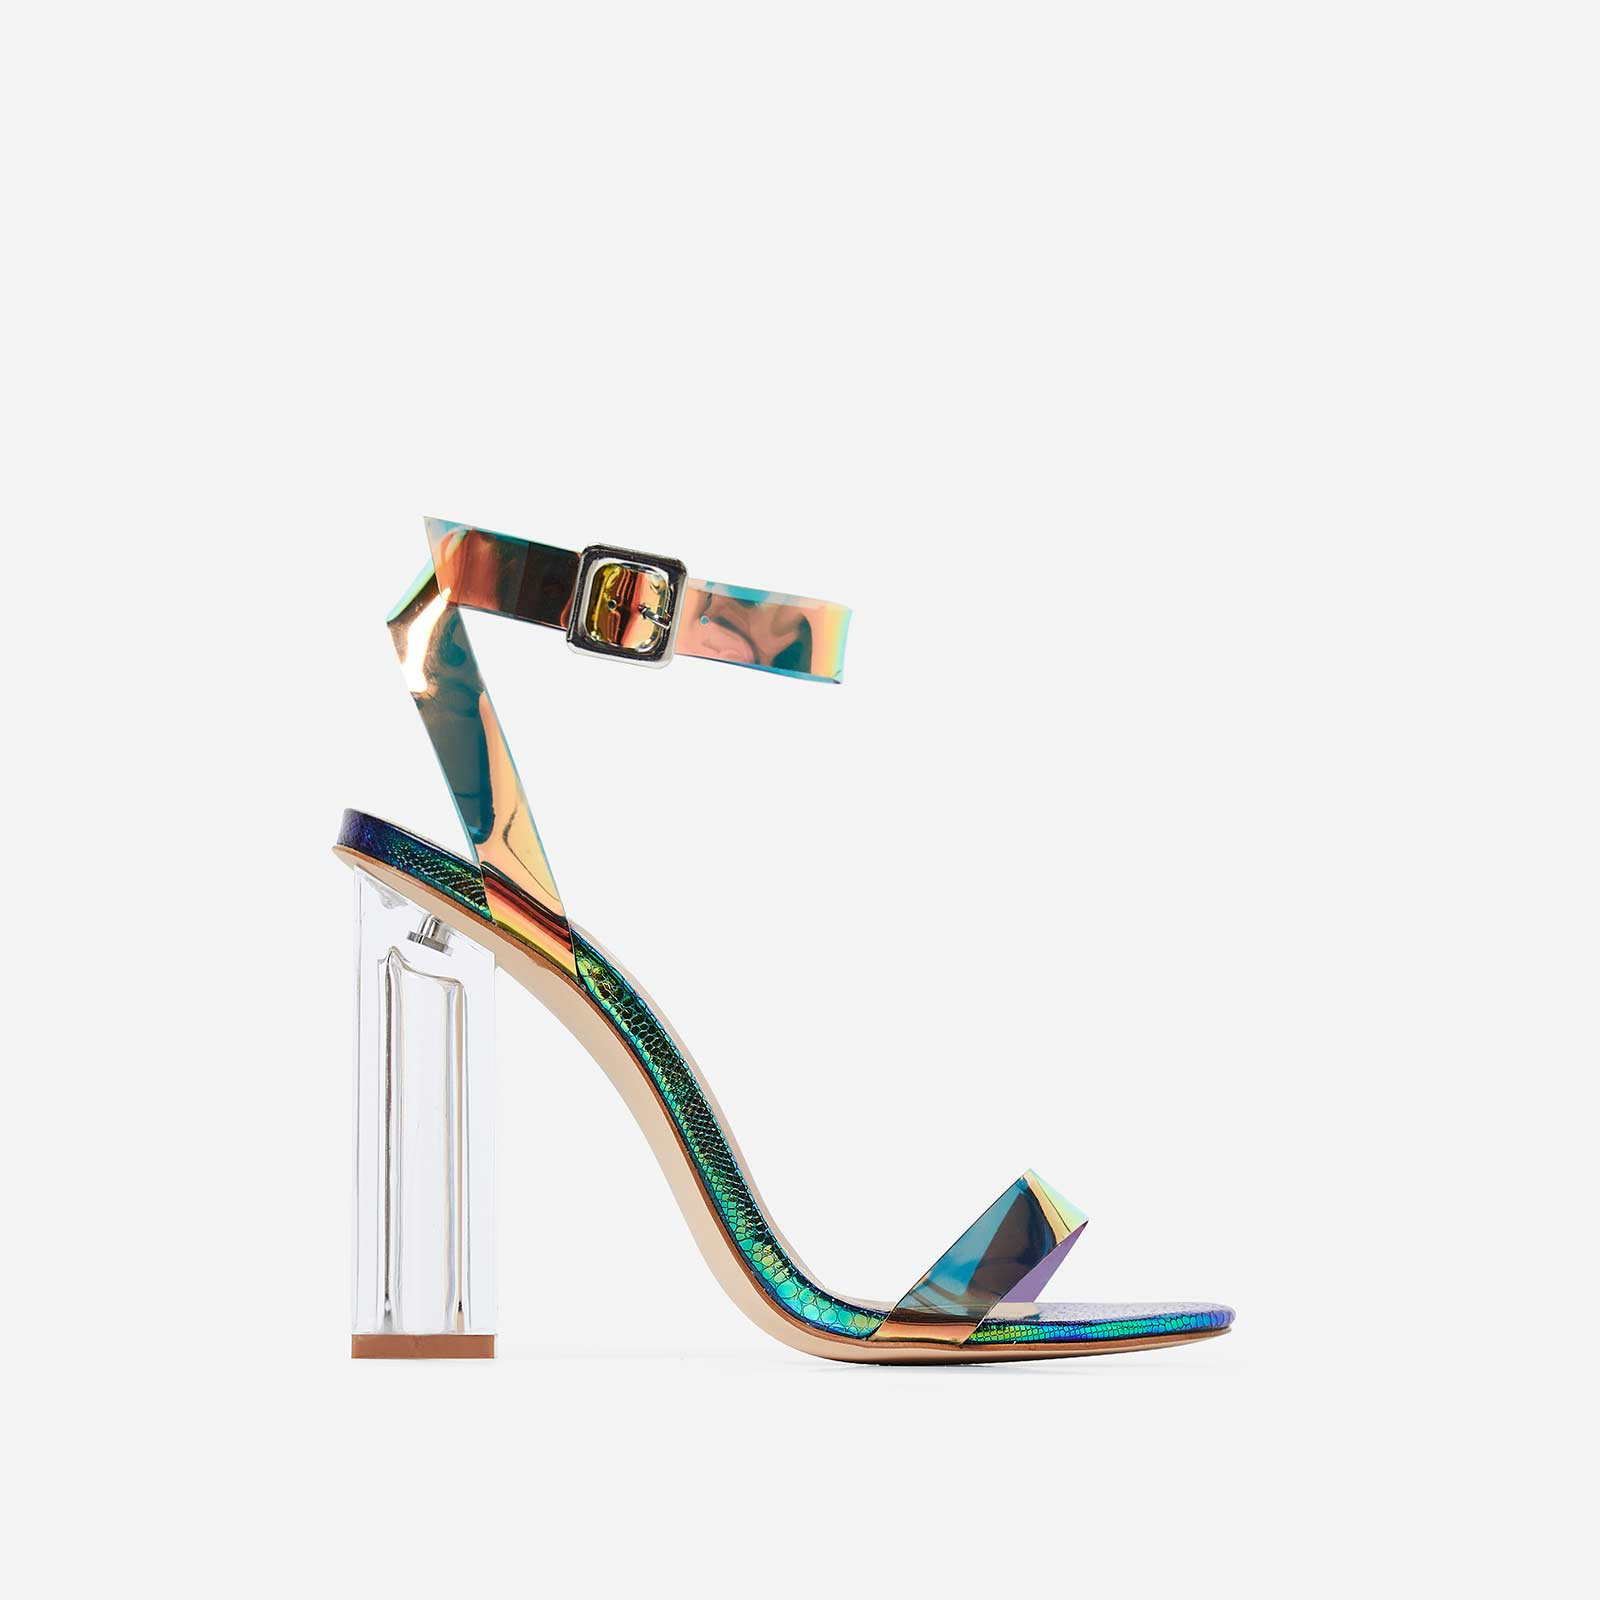 Mercie Barely There Perspex Block Heel In Green Snake Print Faux Leather